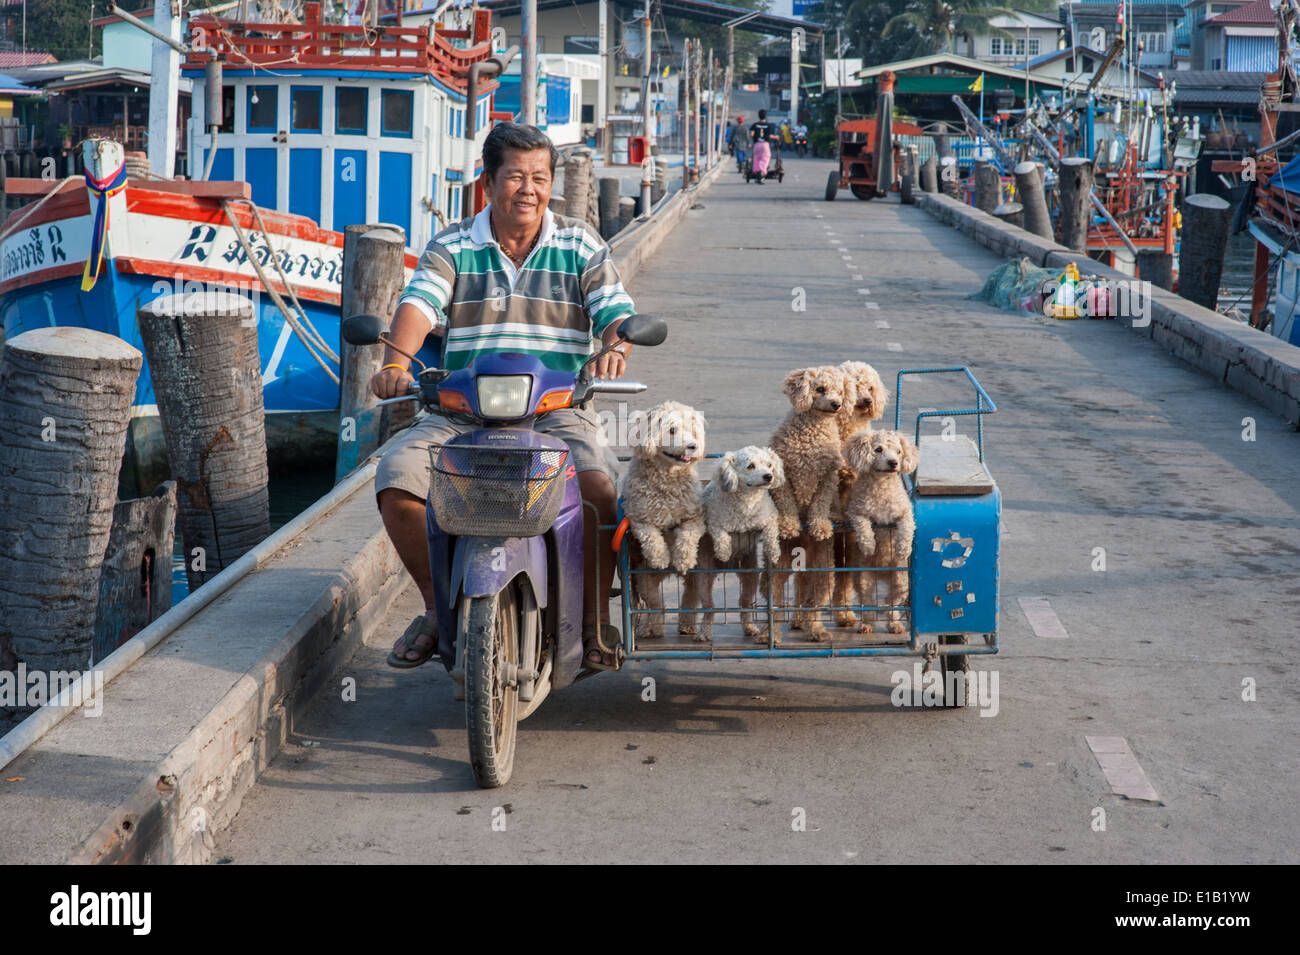 Amusing dogs going for a ride in Thailand - Stock Image